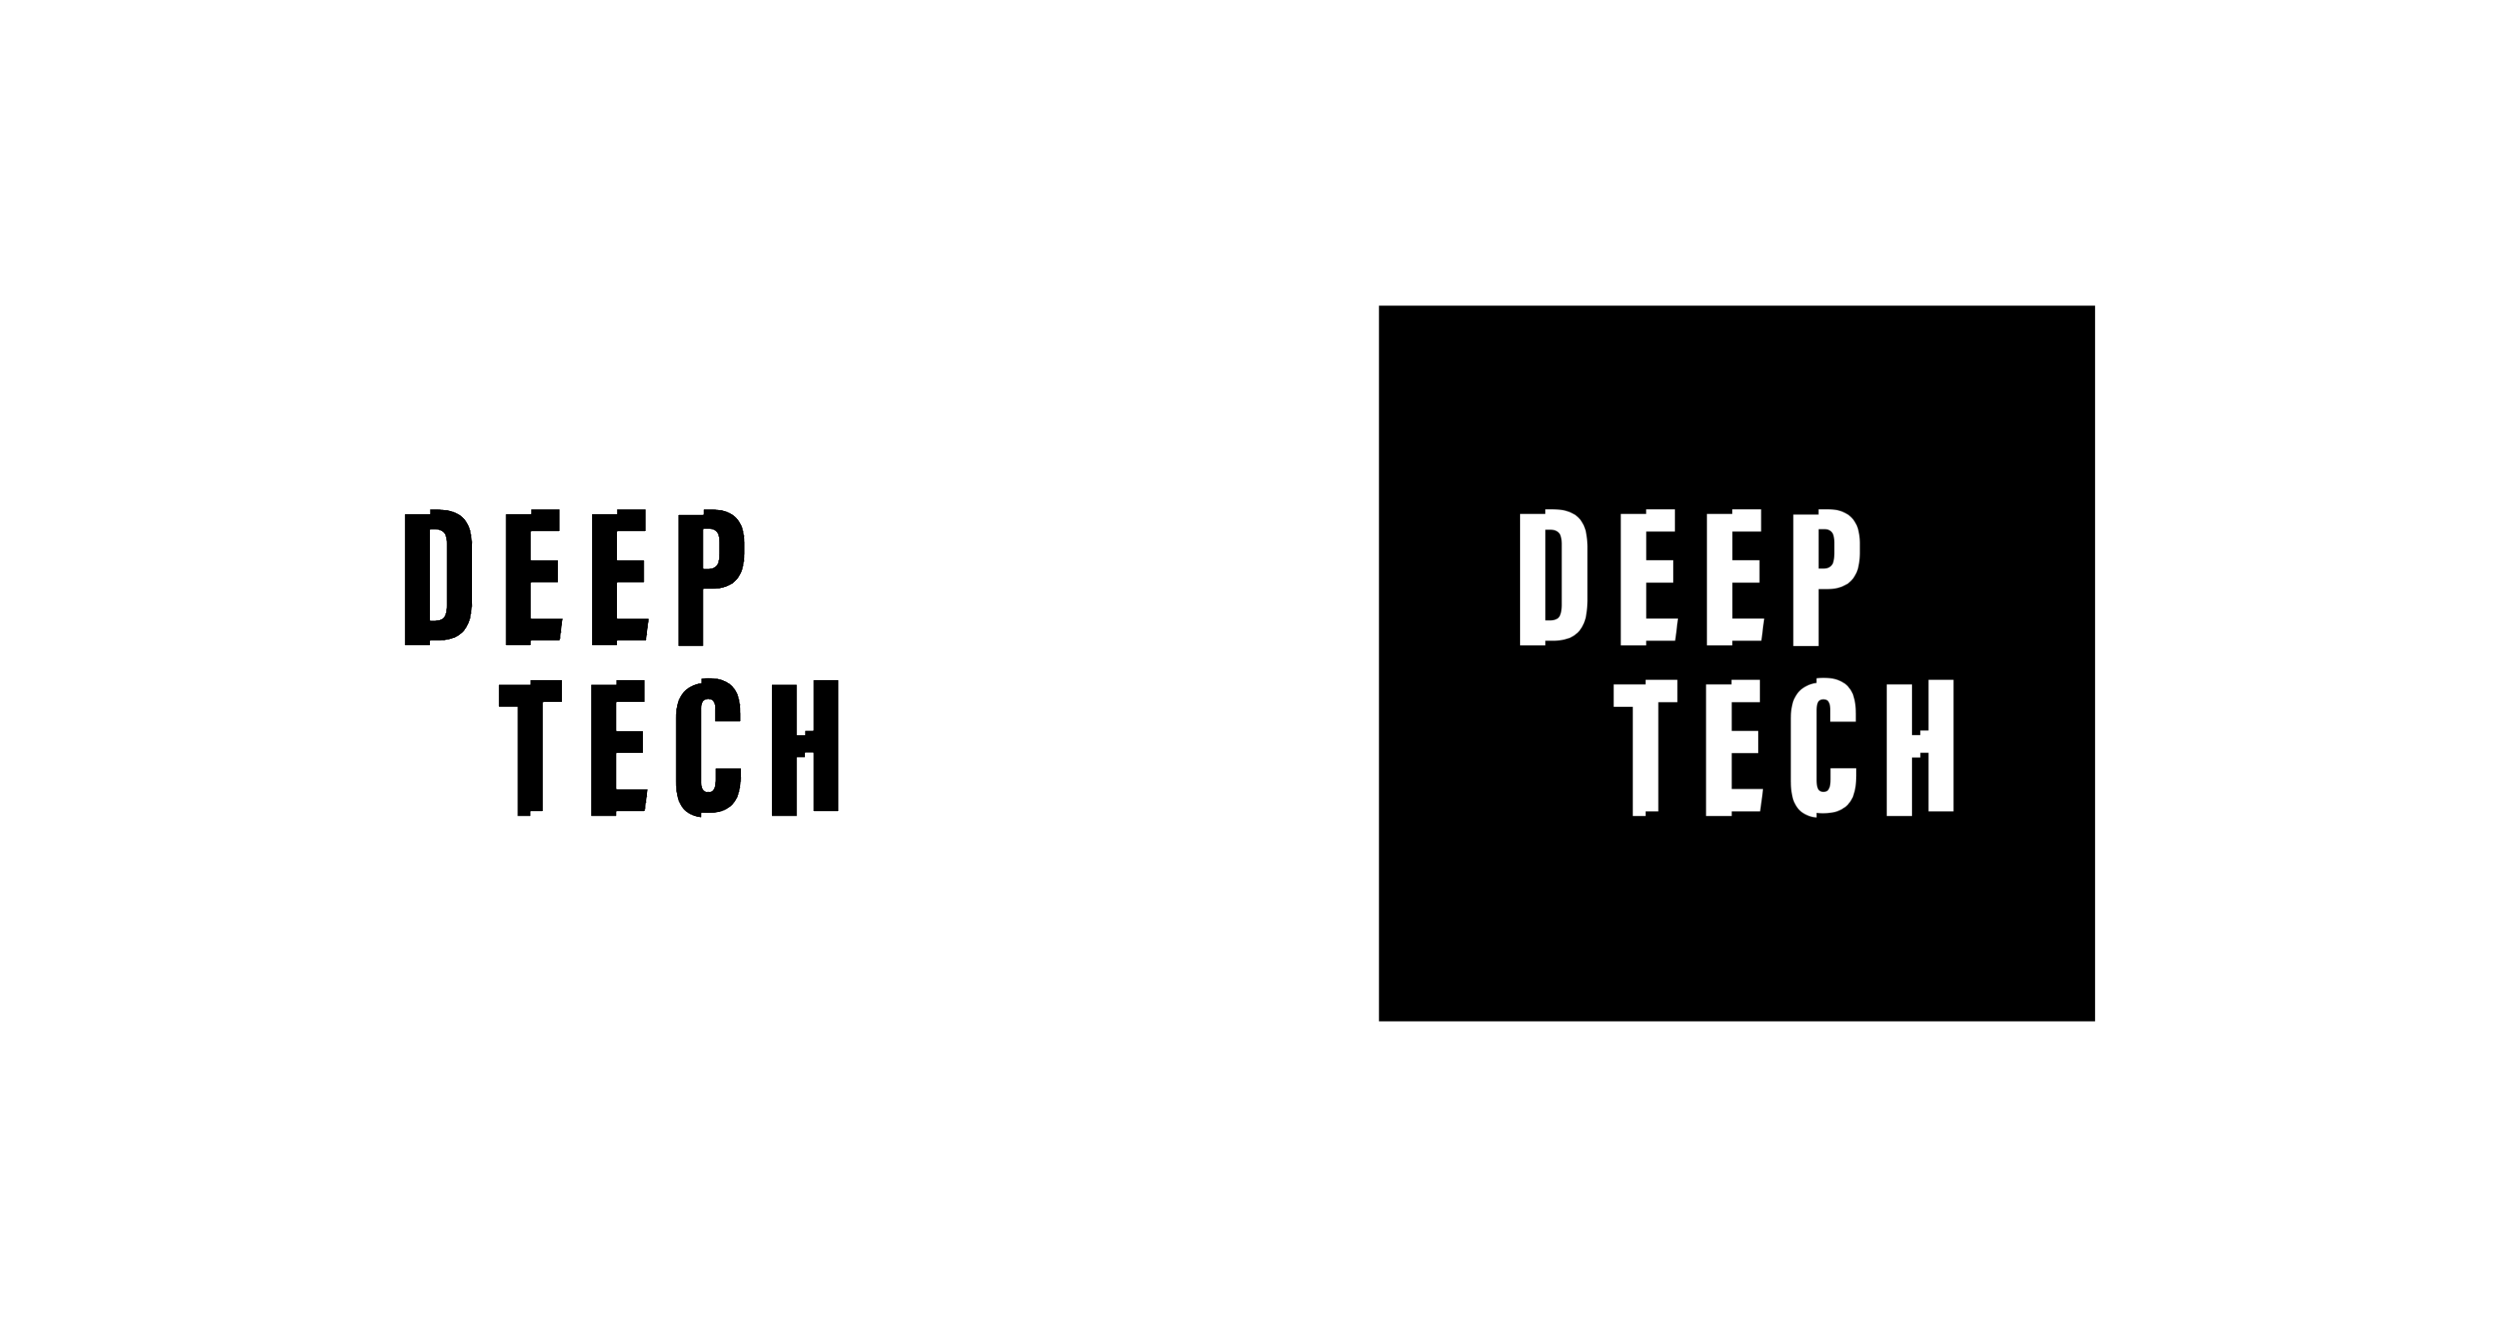 deeptech research doc 2_deep tech logo.png